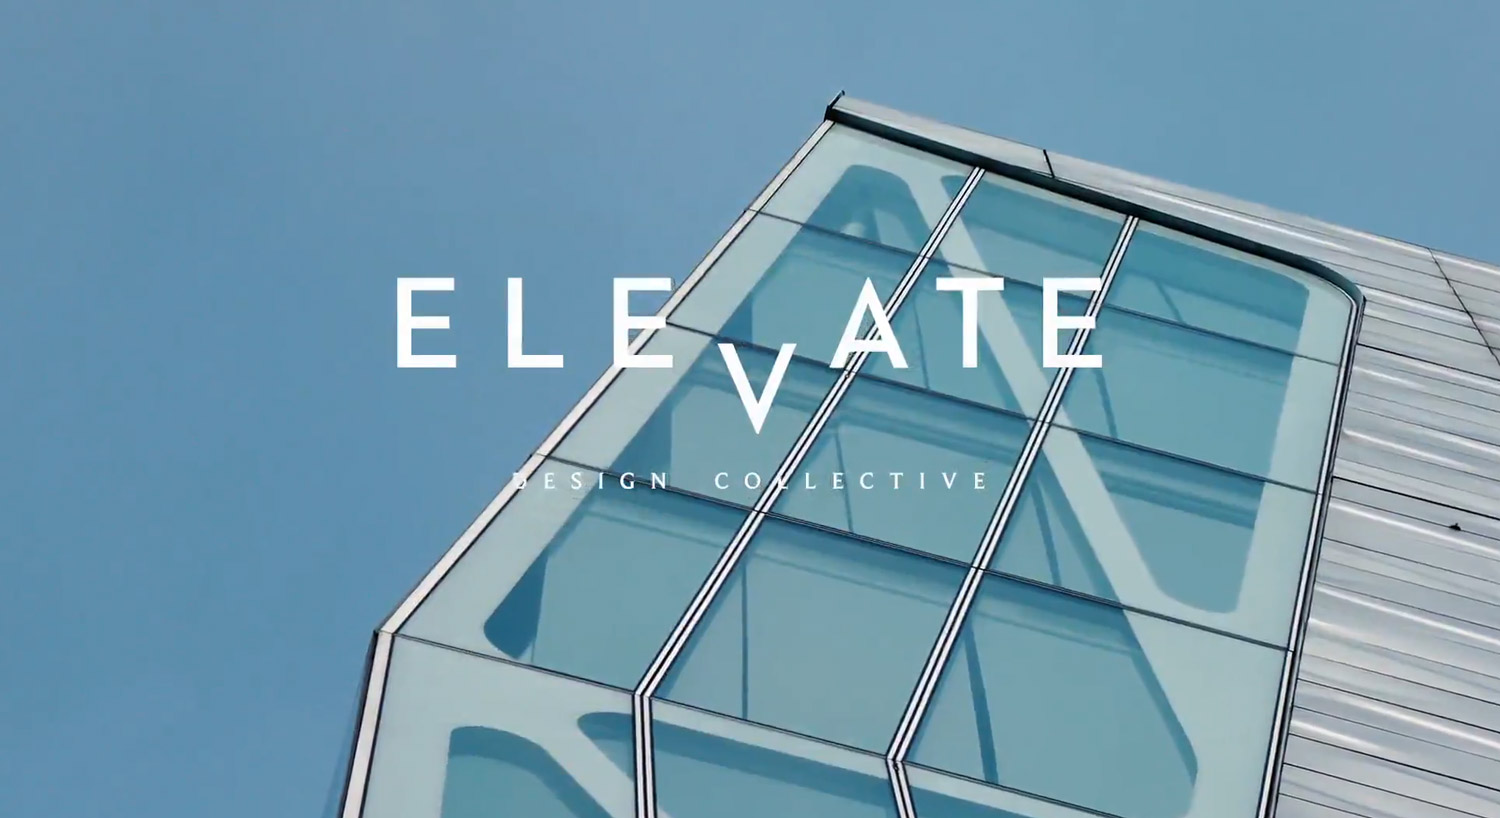 Elevate Design logo over building.